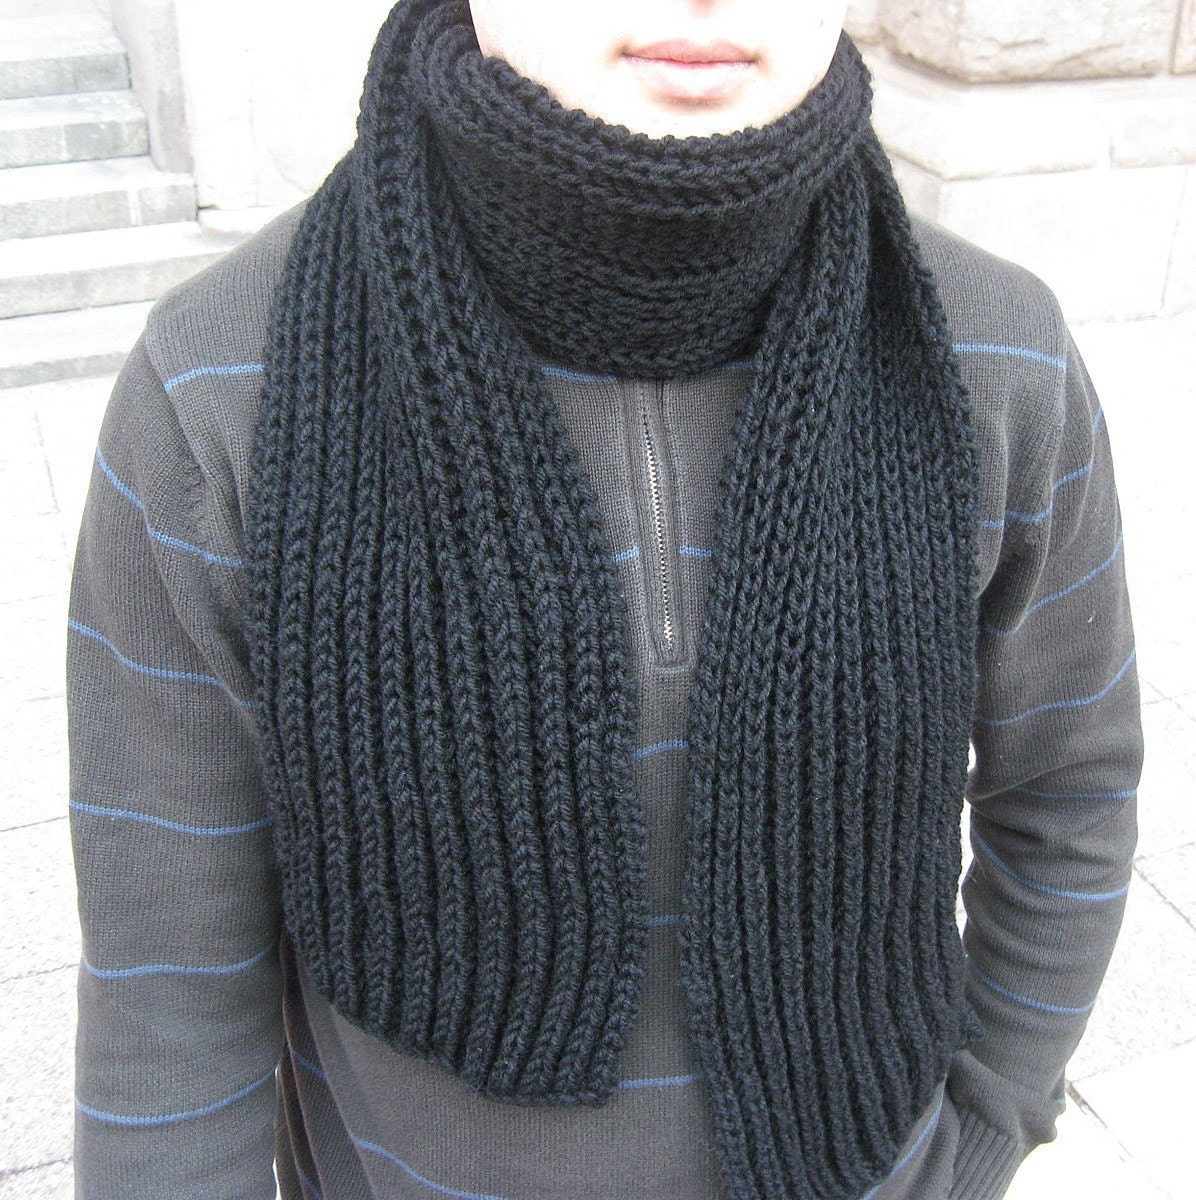 sale 40 black knit wool scarf for best gift for him